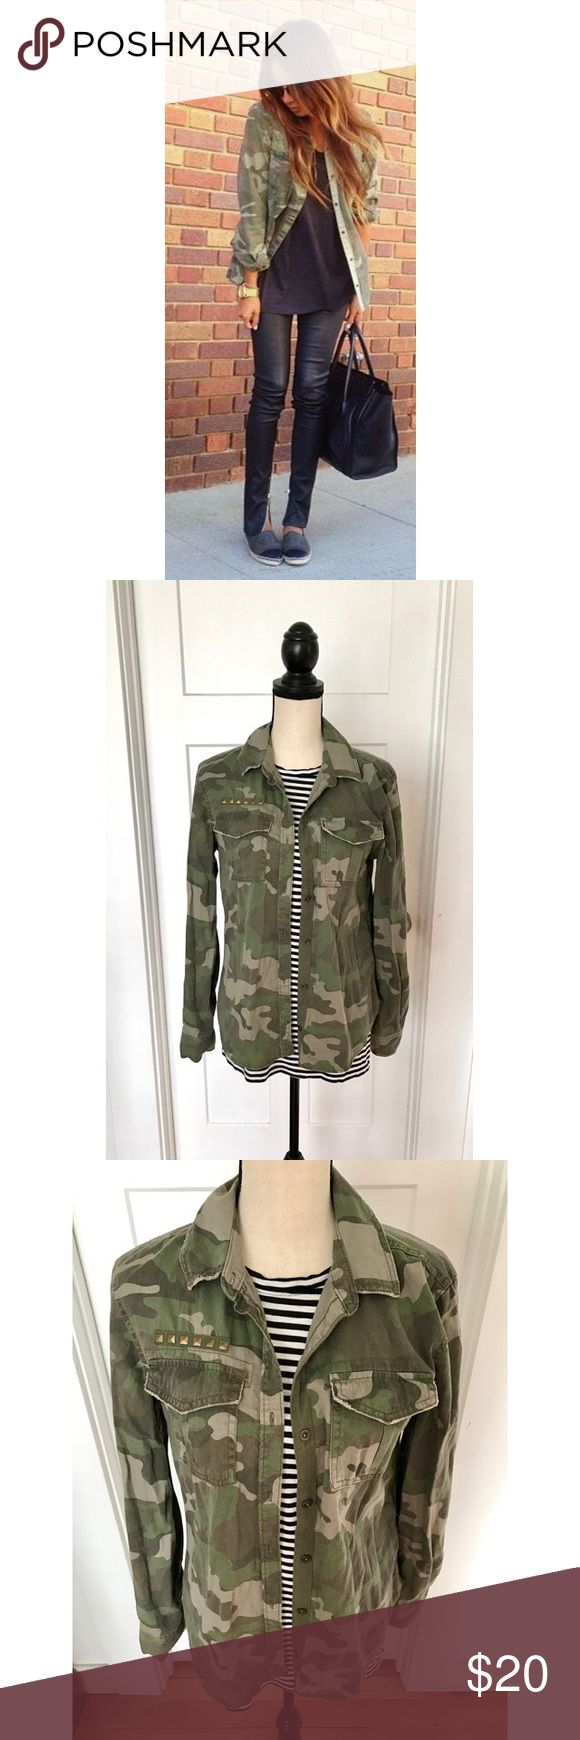 Camo Shirt Button down shirt/jacket in Camo print with stud detailing above front pocket. By Mudd. Mudd Tops Button Down Shirts